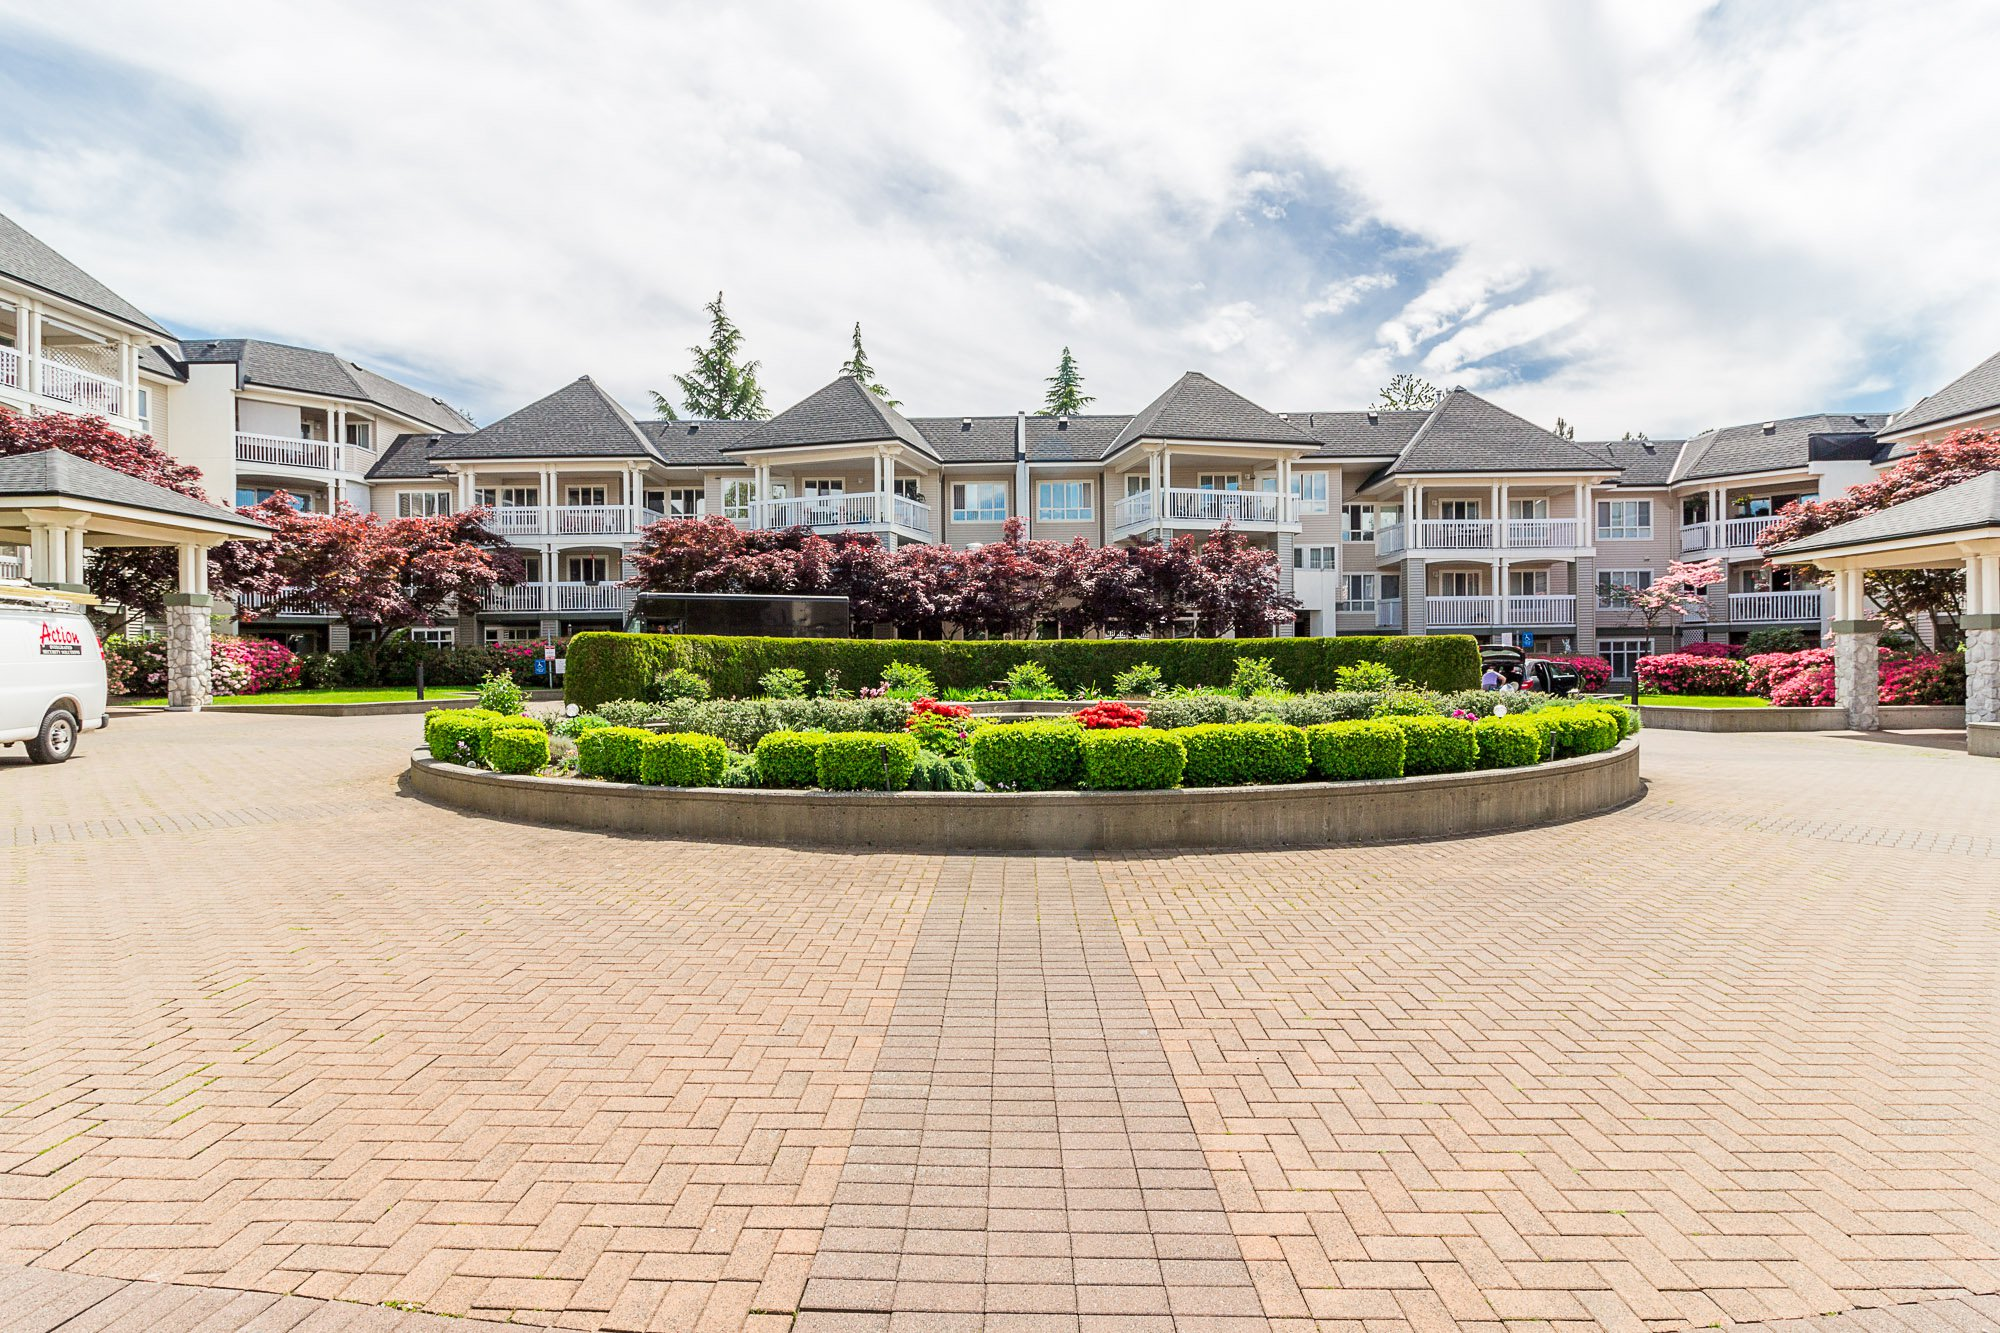 """Photo 29: Photos: 412 22022 49 Avenue in Langley: Murrayville Condo for sale in """"Murray Green"""" : MLS®# R2266359"""